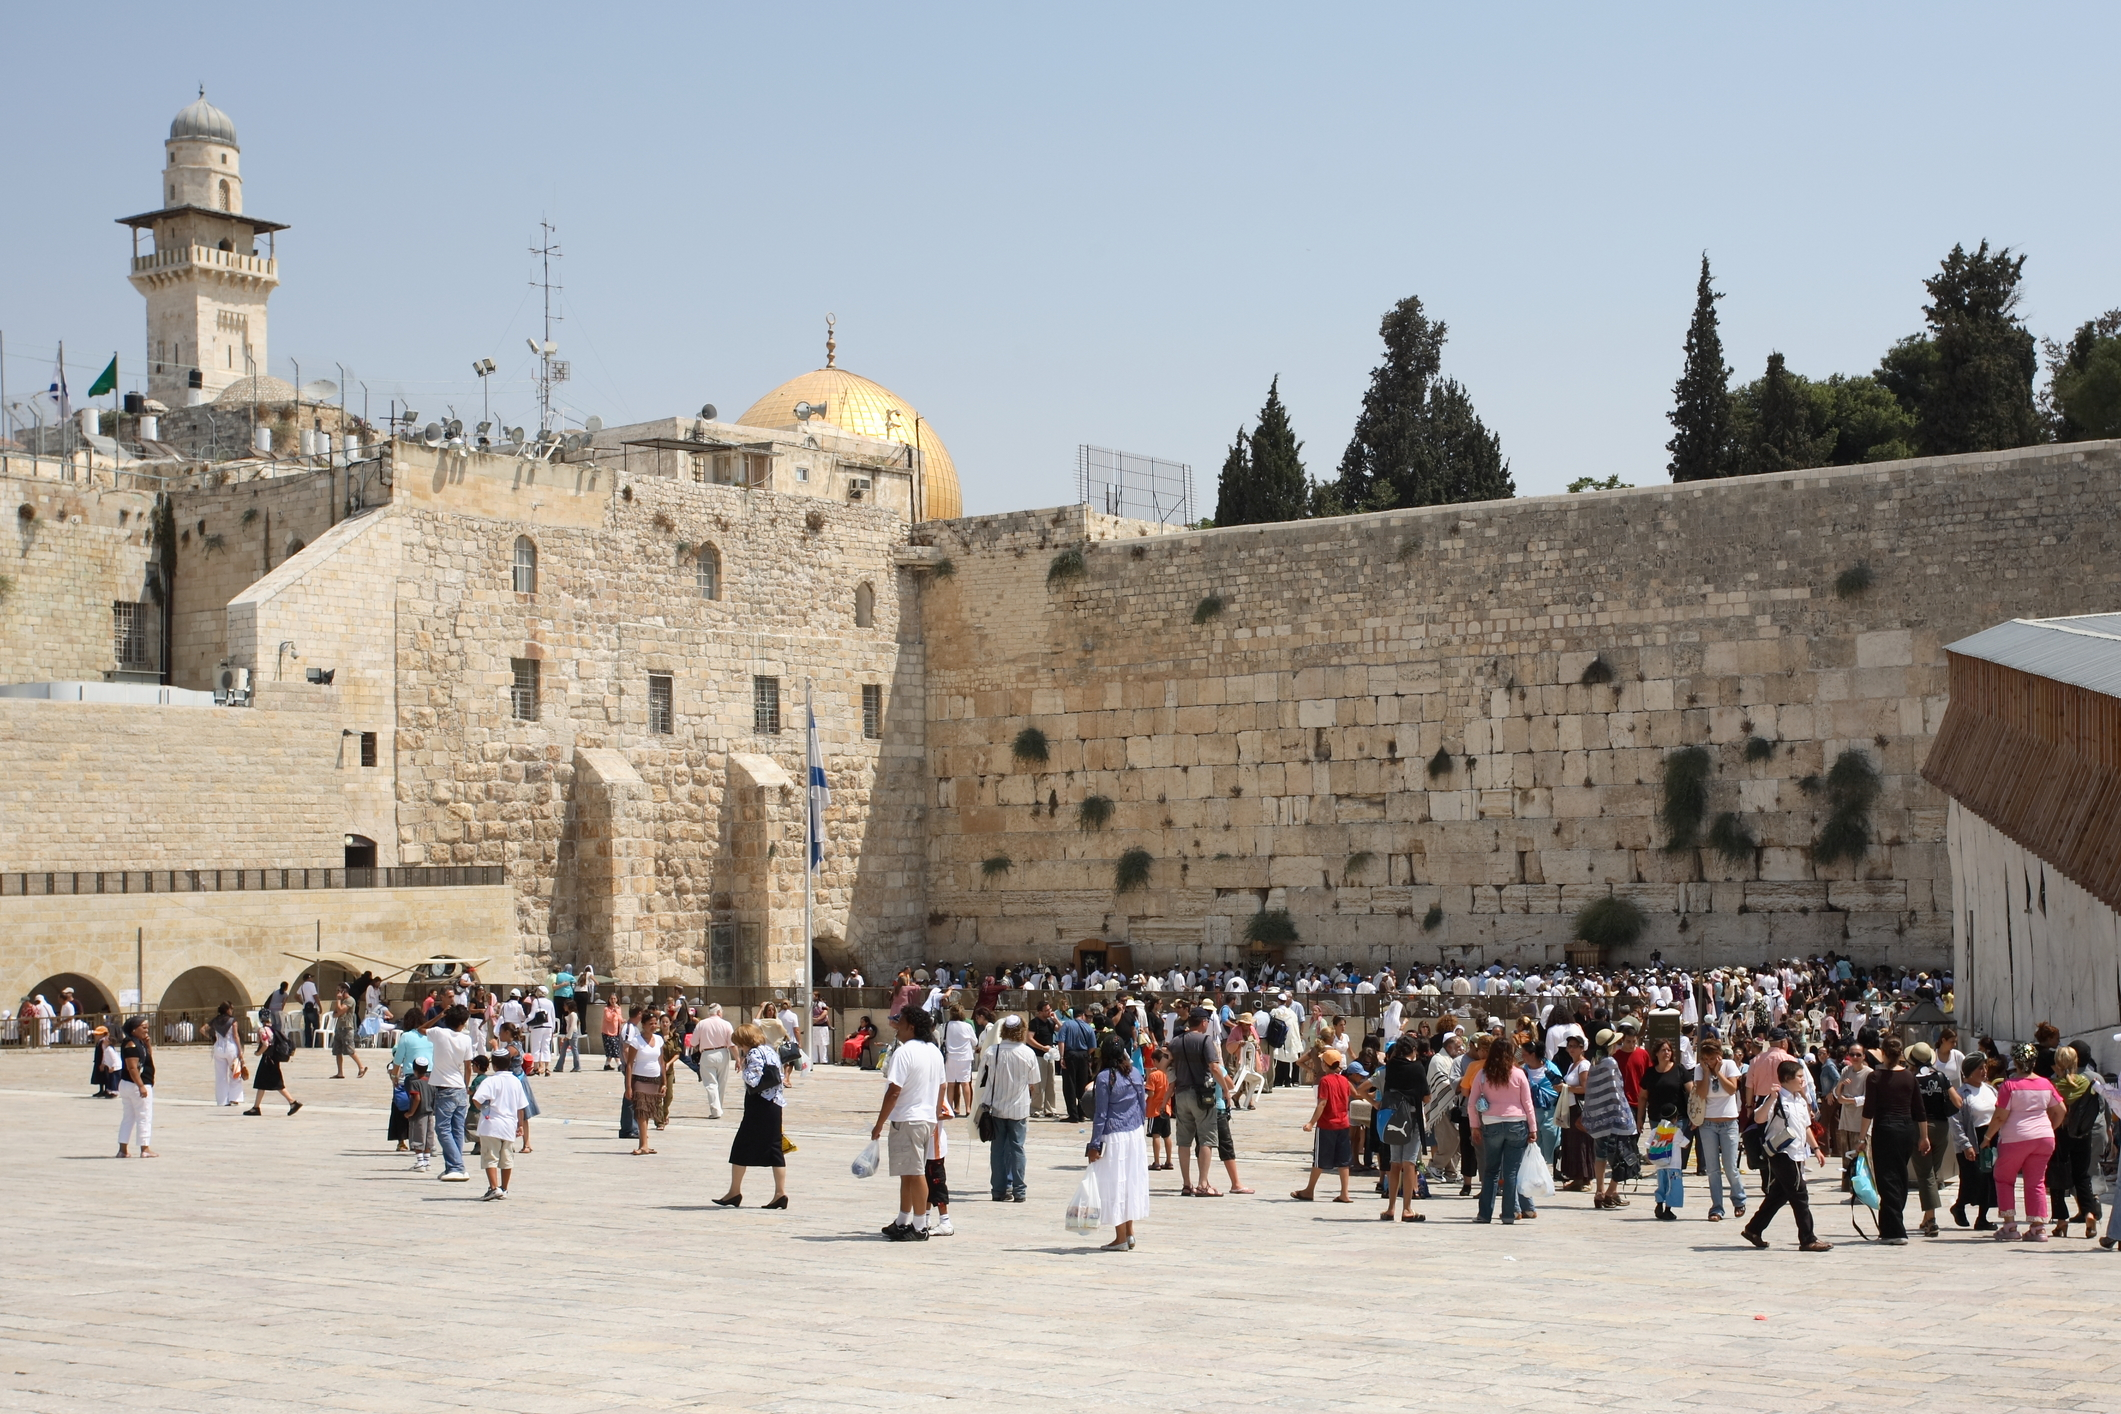 The Wailing Wall (also known as the Western Wall) in Jerusalem